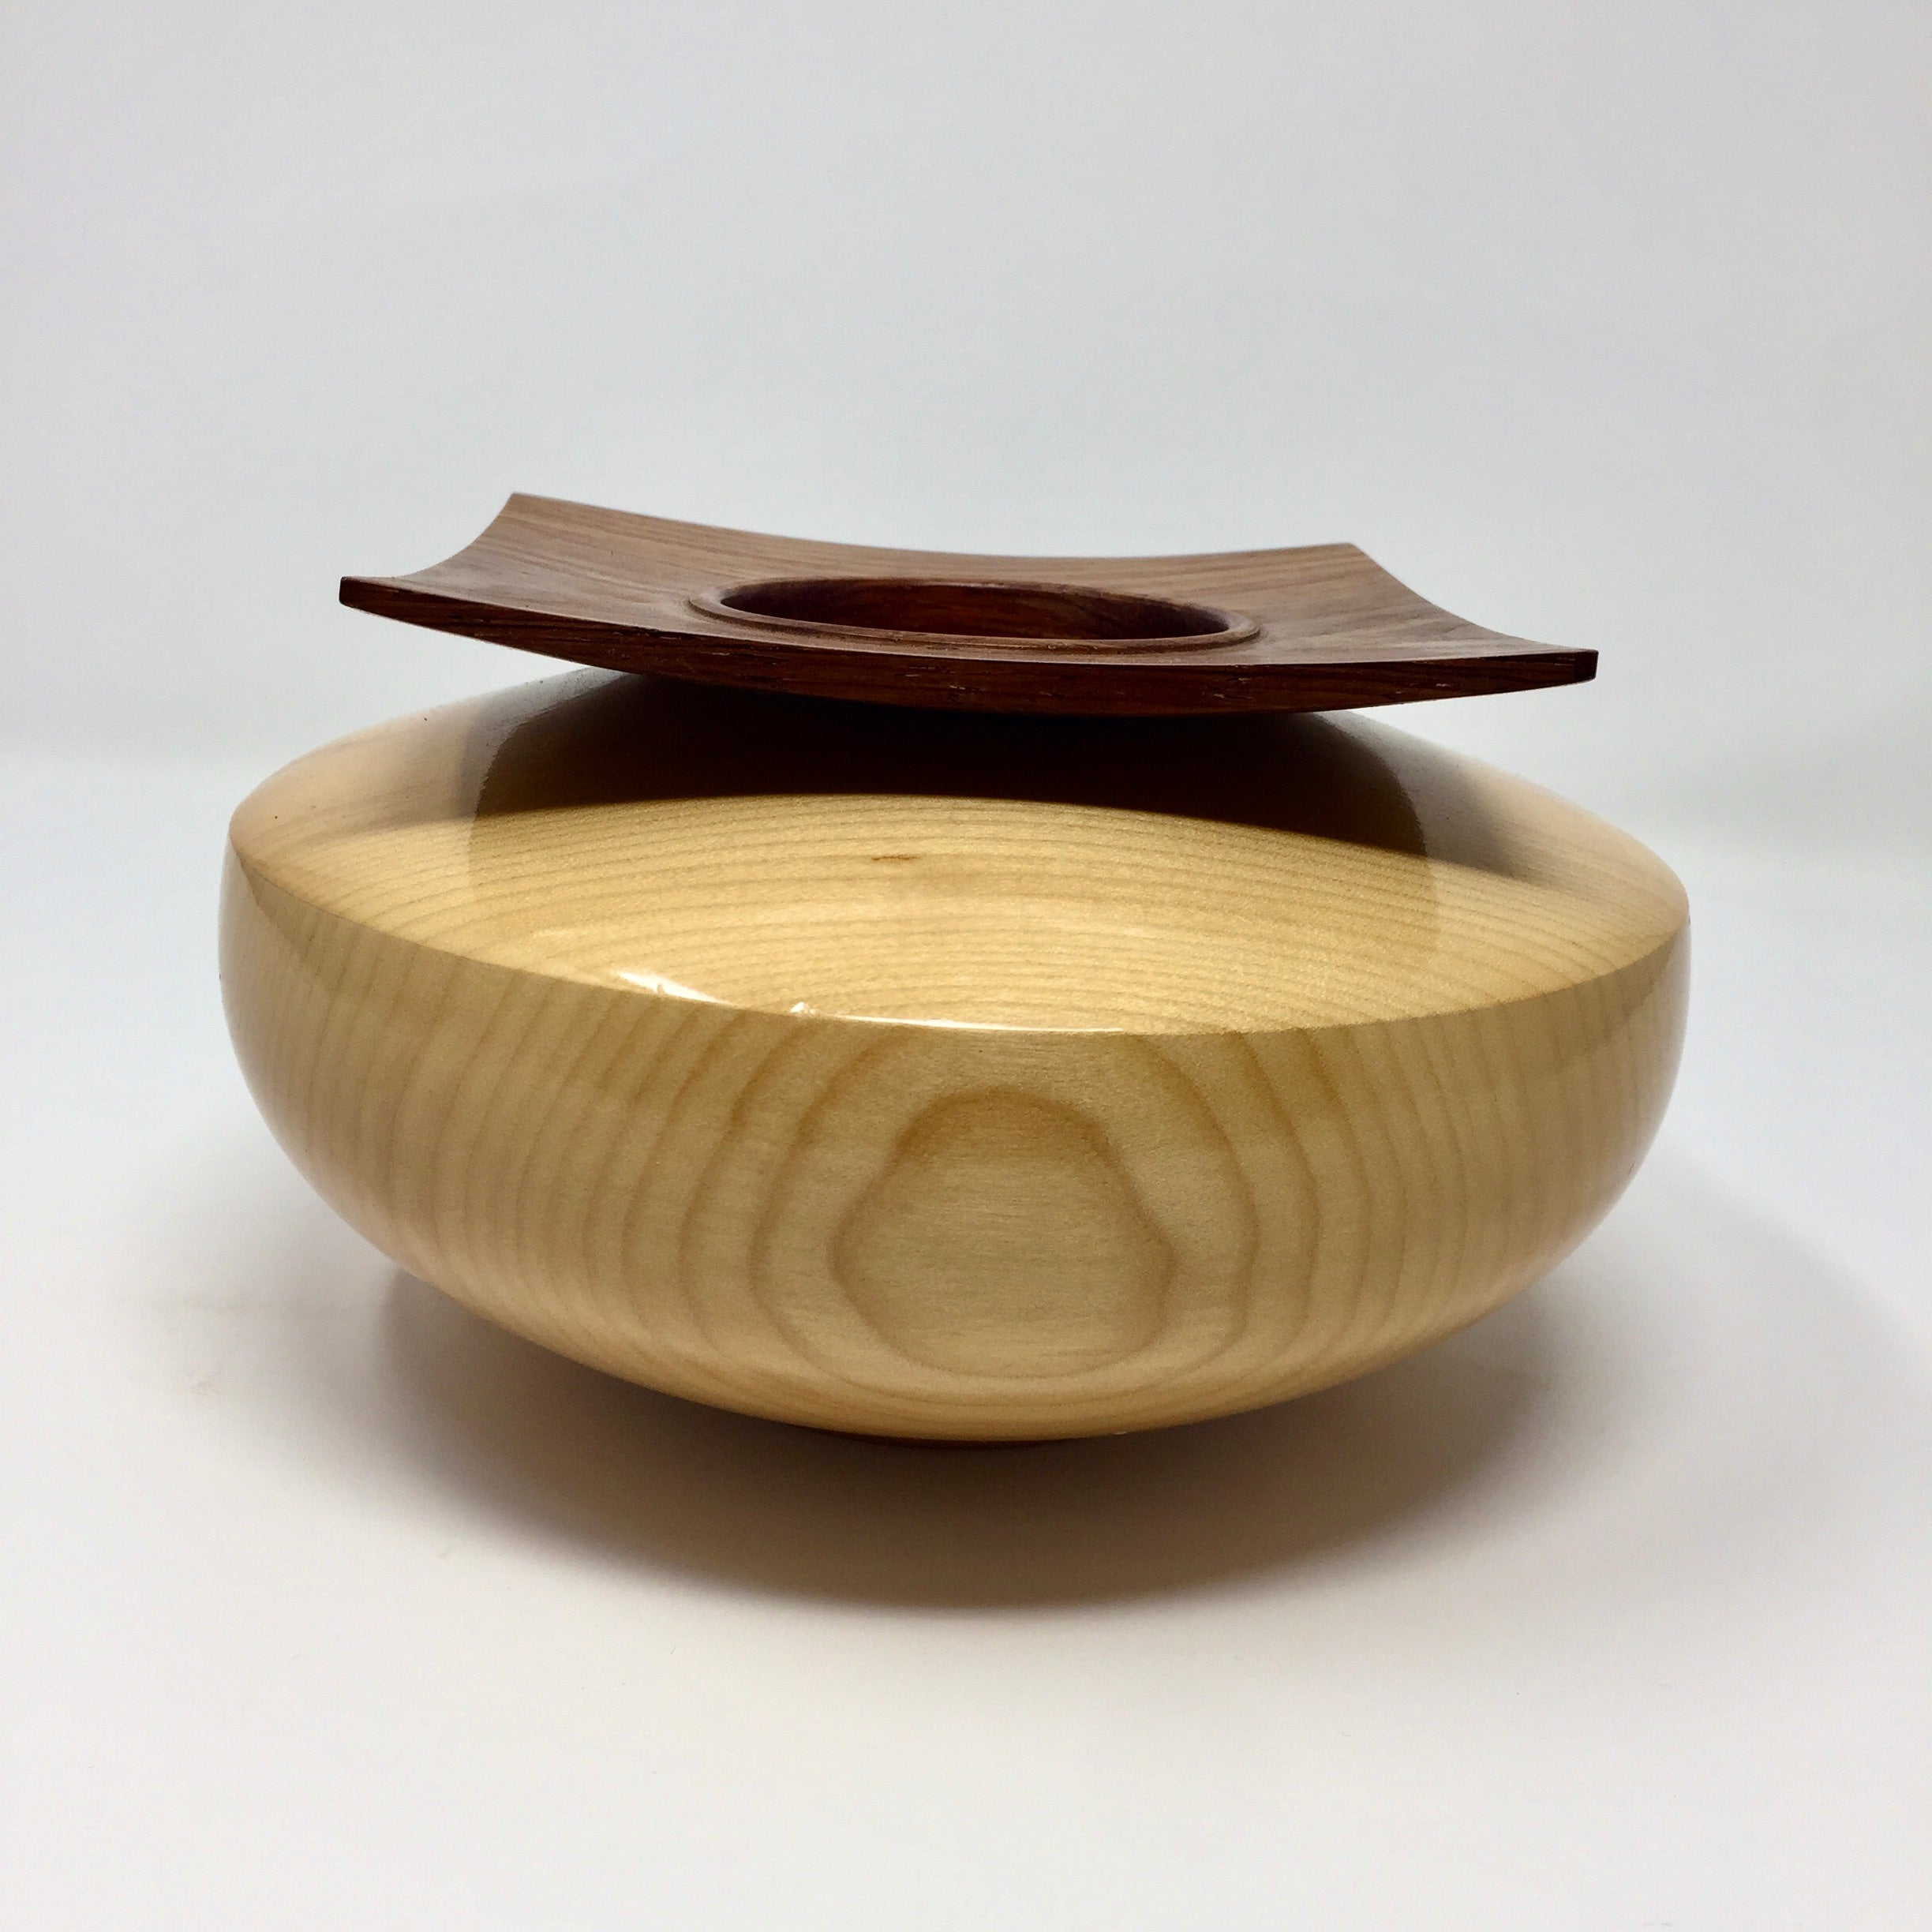 SQUARE TOP ART BOWL